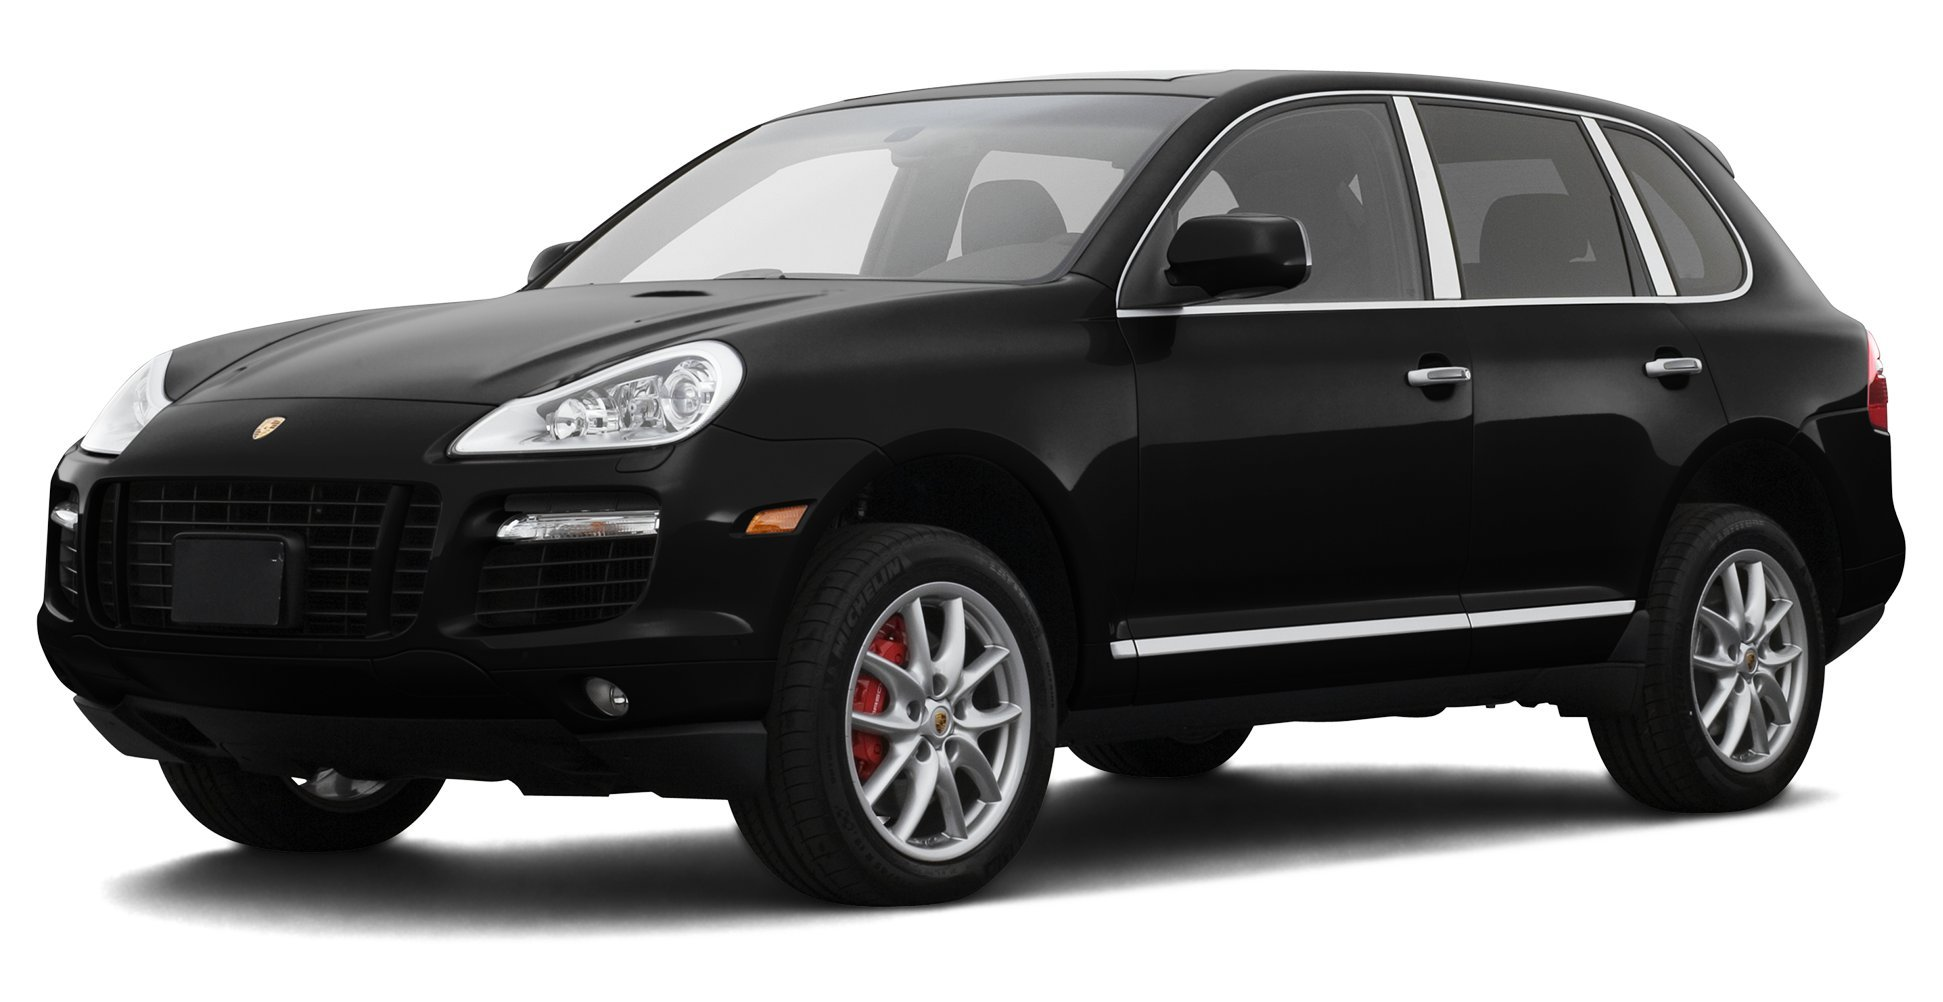 2008 porsche cayenne, all wheel drive 4-door tiptronic